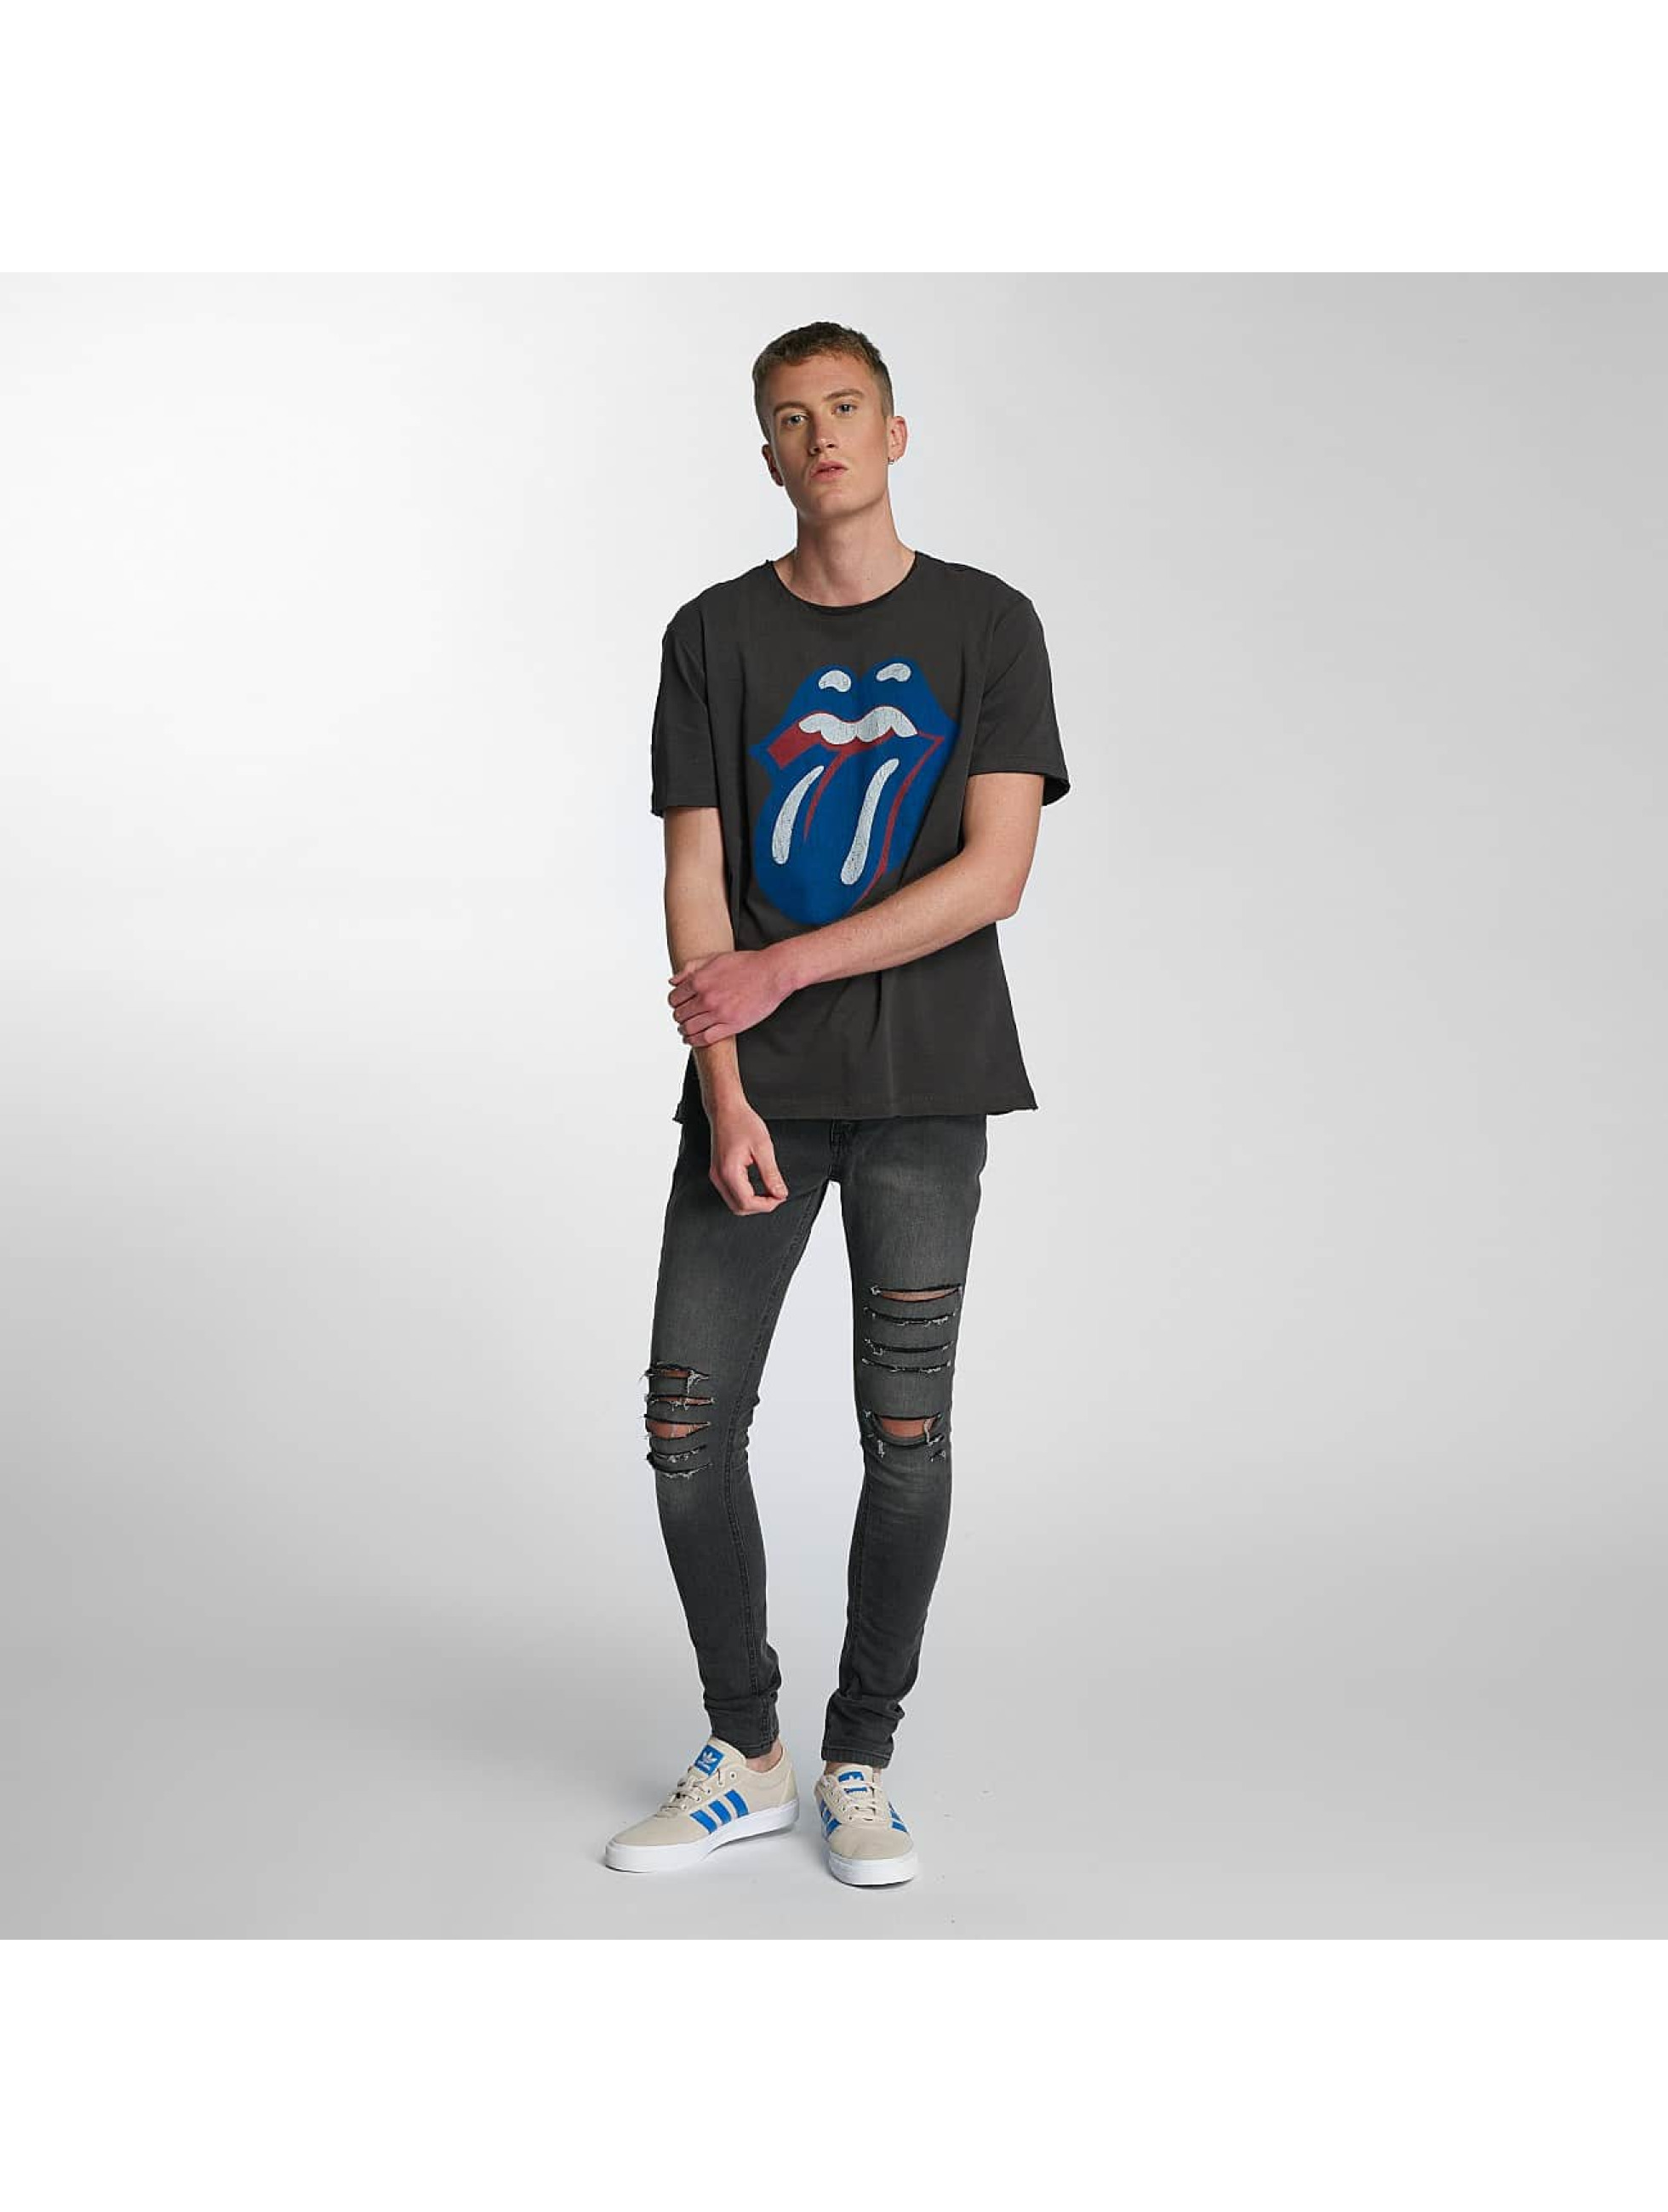 Amplified T-Shirt Rolling Stones Blue und Lonesome grau